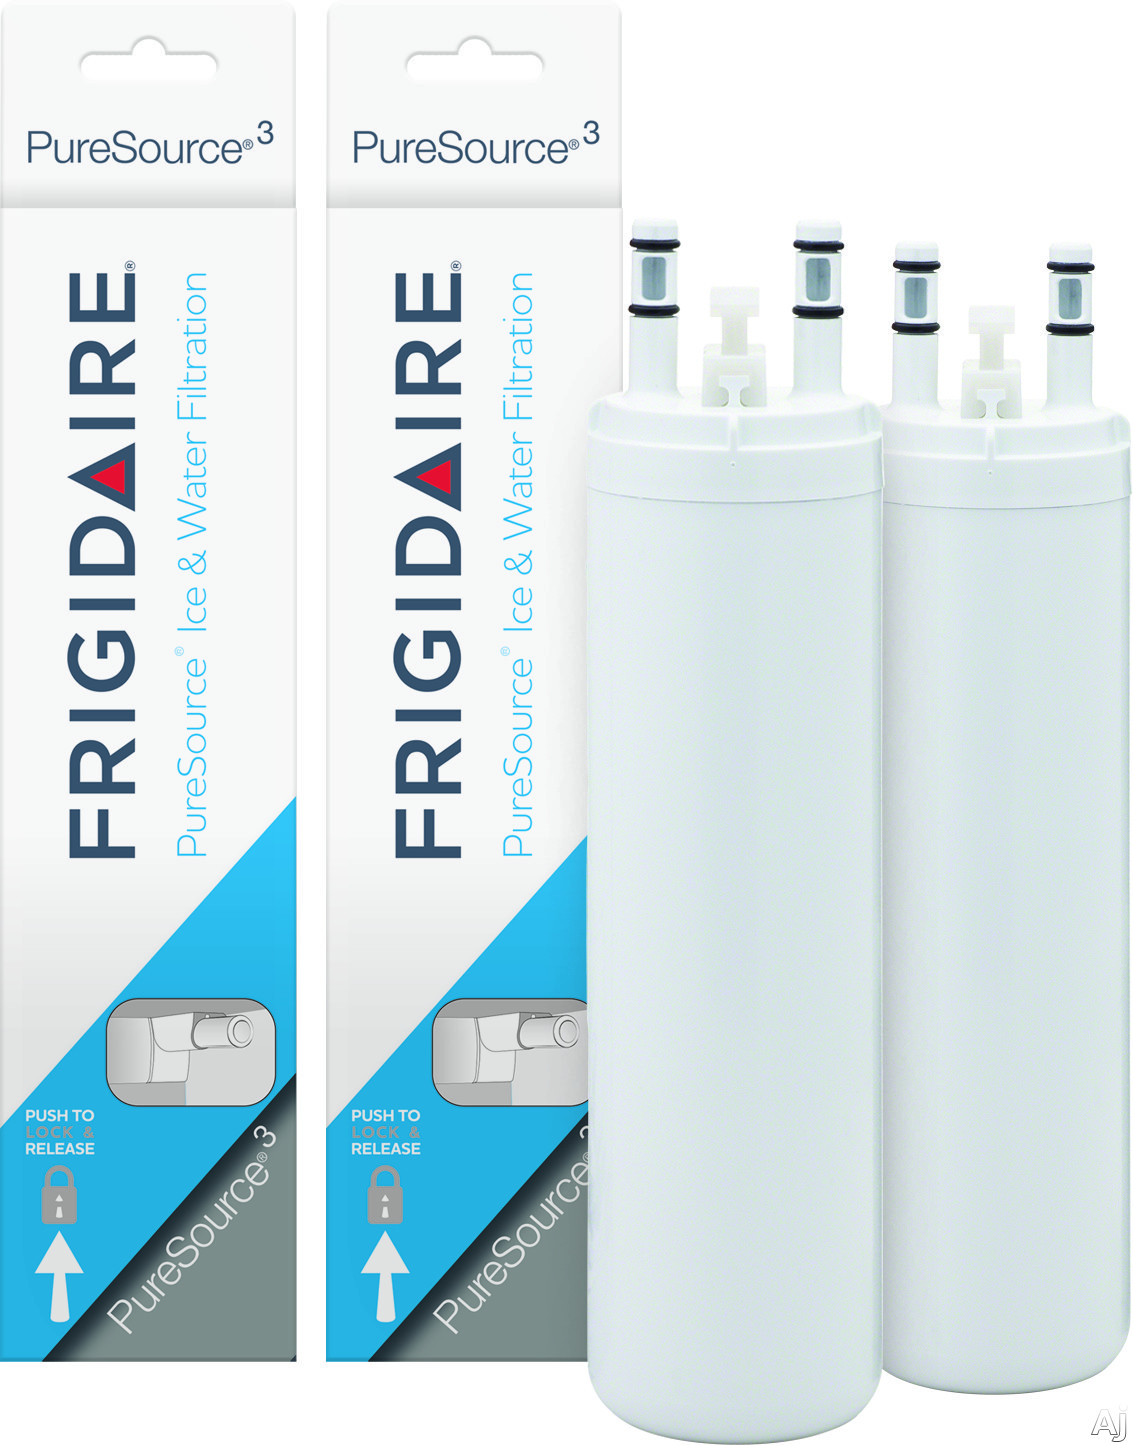 Frigidaire WF3CB2PAK PureSource ® 3 Replacement Ice and Cut Filter, 2 pack